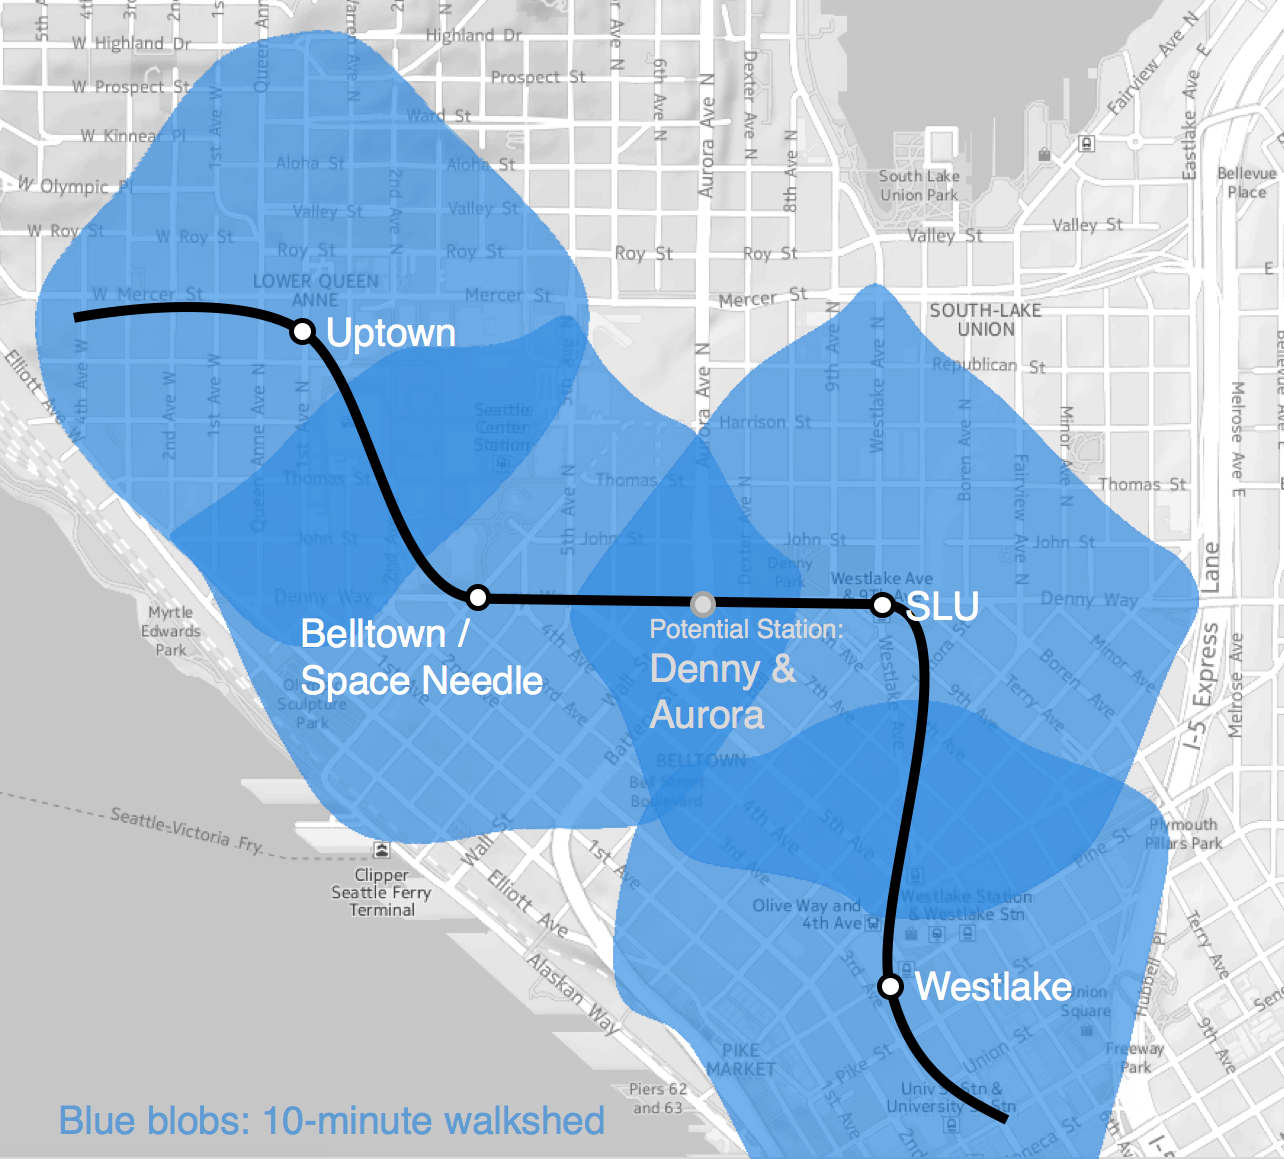 Anton's proposed Belltown alignment. (Anton Babadjanov)